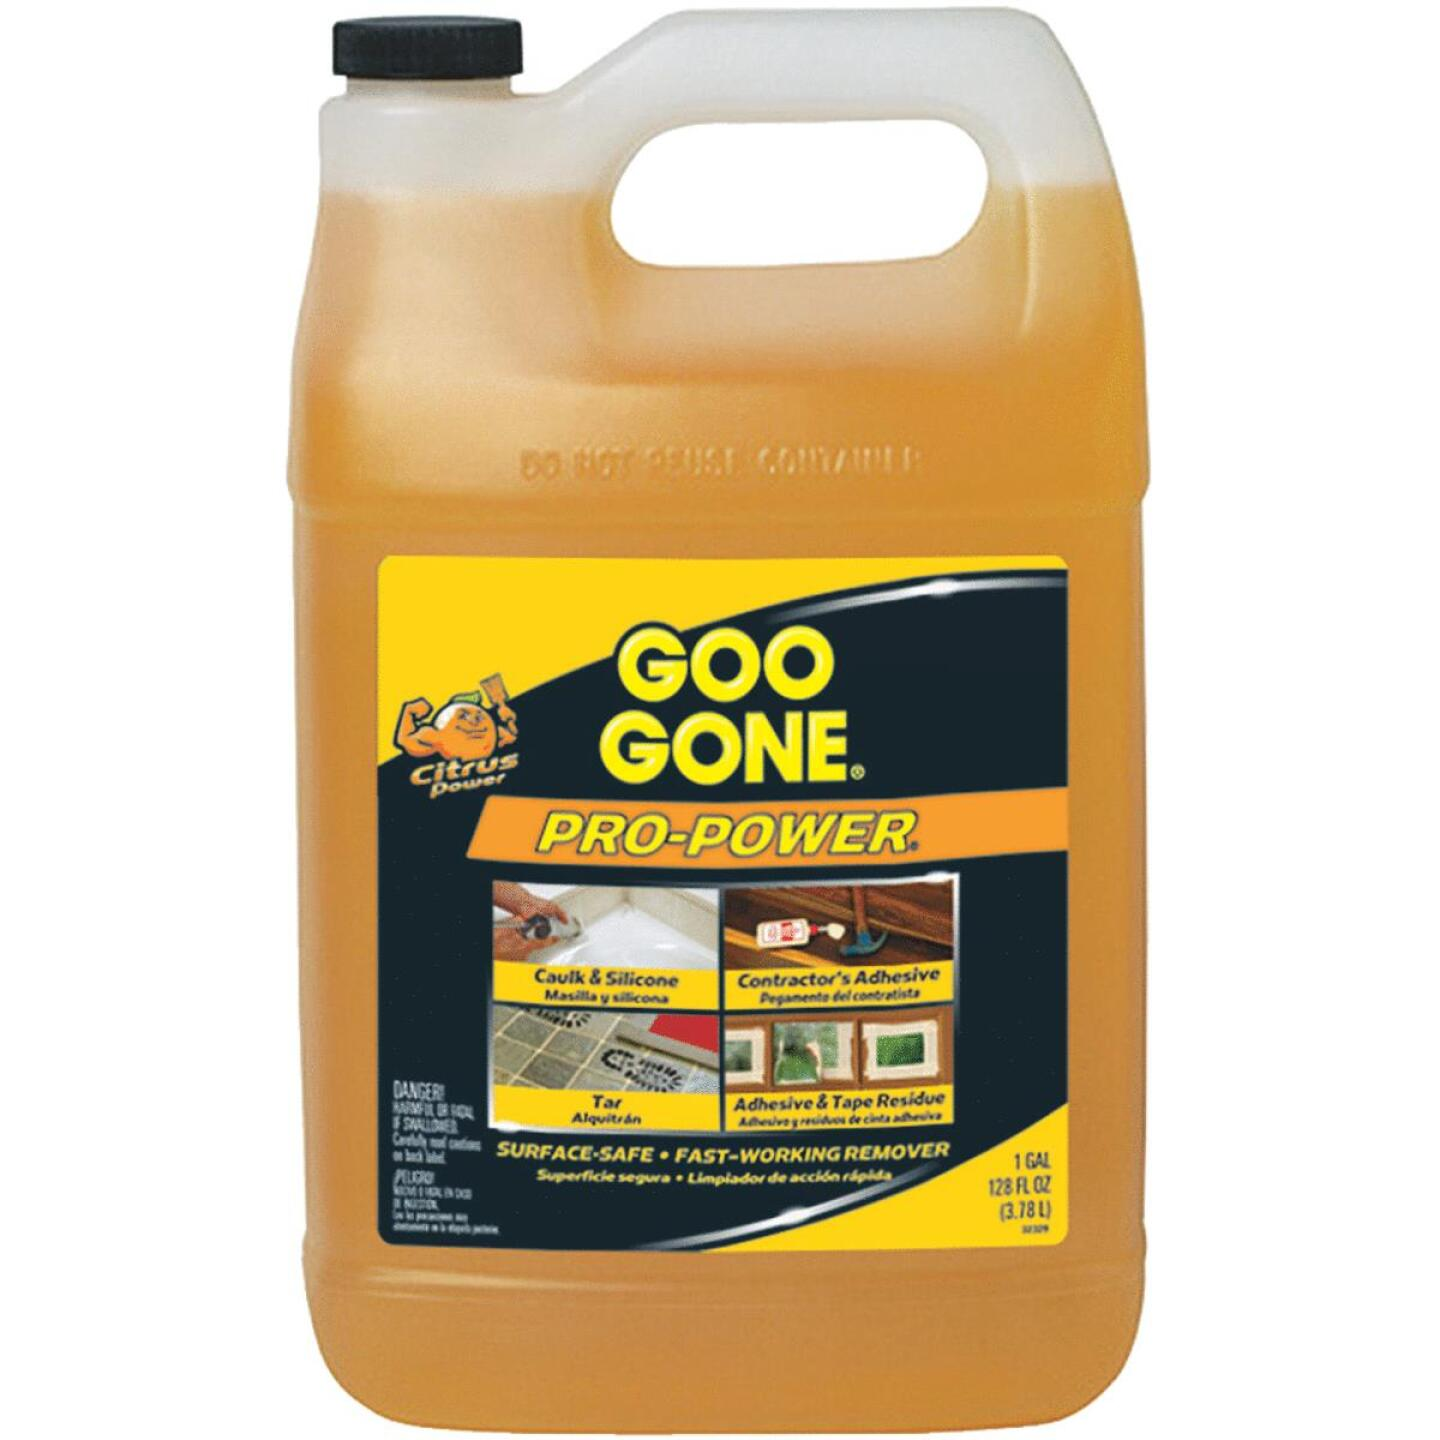 Goo Gone 1 Gal. Pro-Power Adhesive Remover Image 118